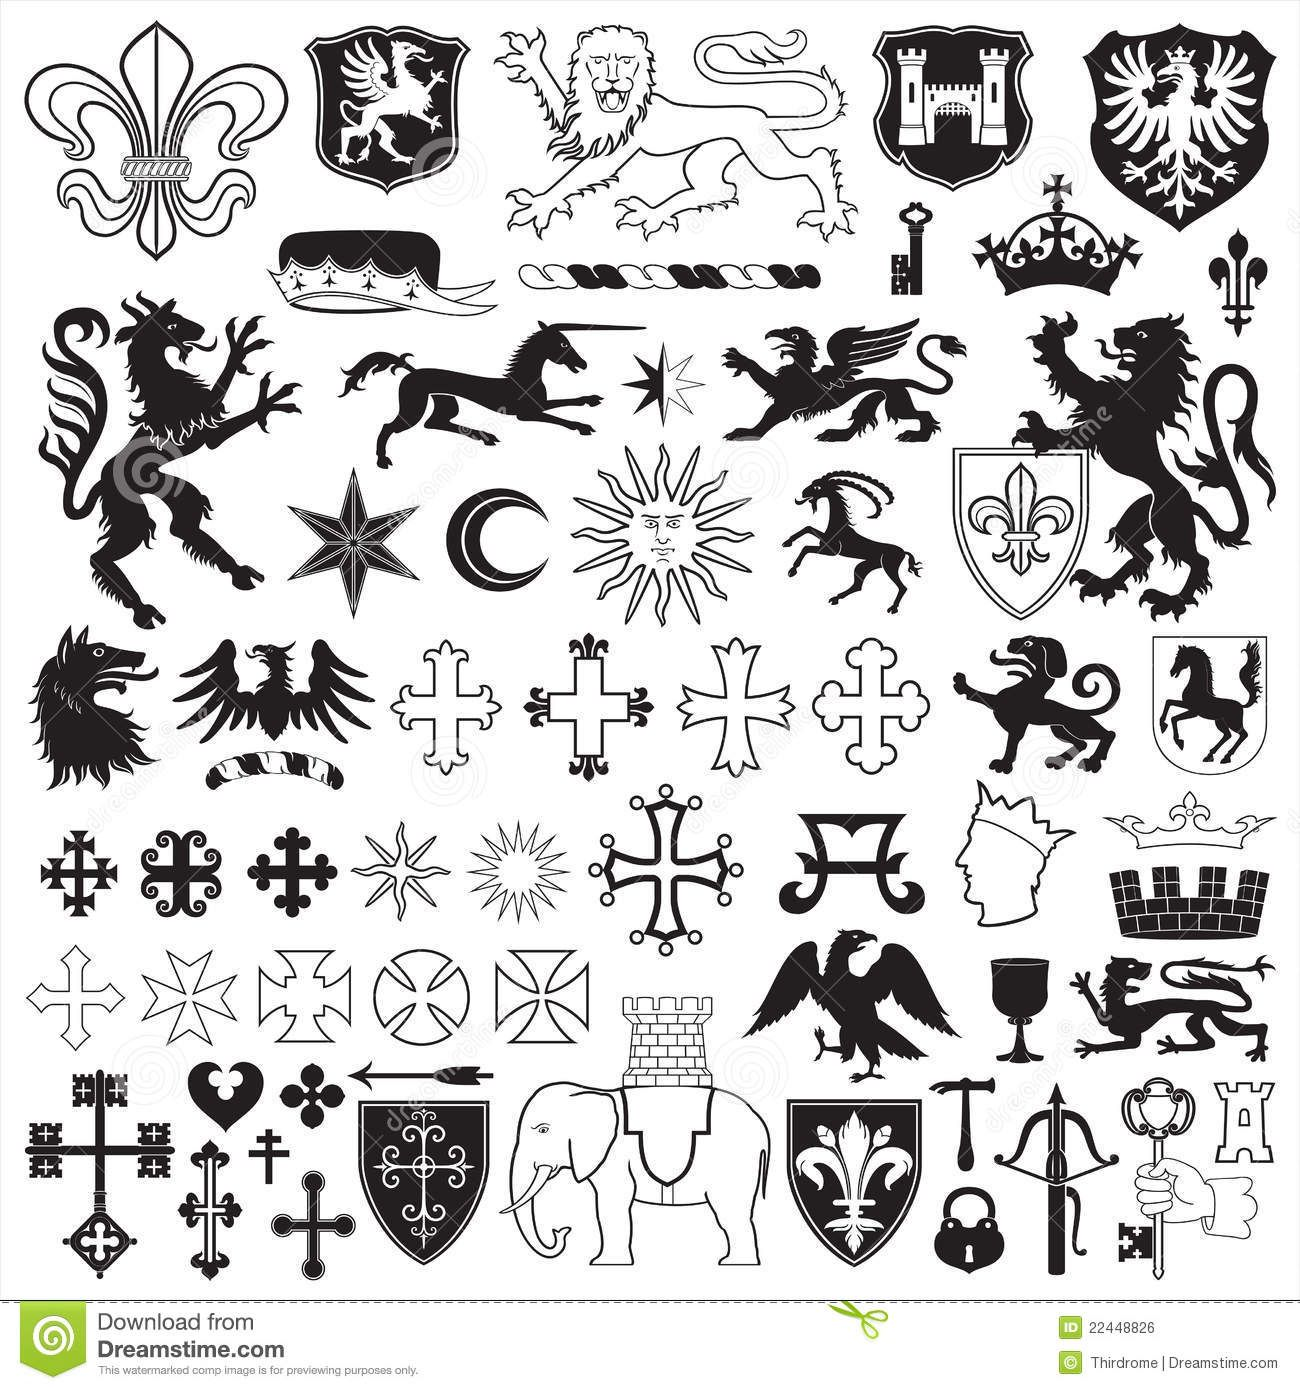 Images for coat of arms symbols animals family crest symbols etc images for coat of arms symbols animals buycottarizona Gallery